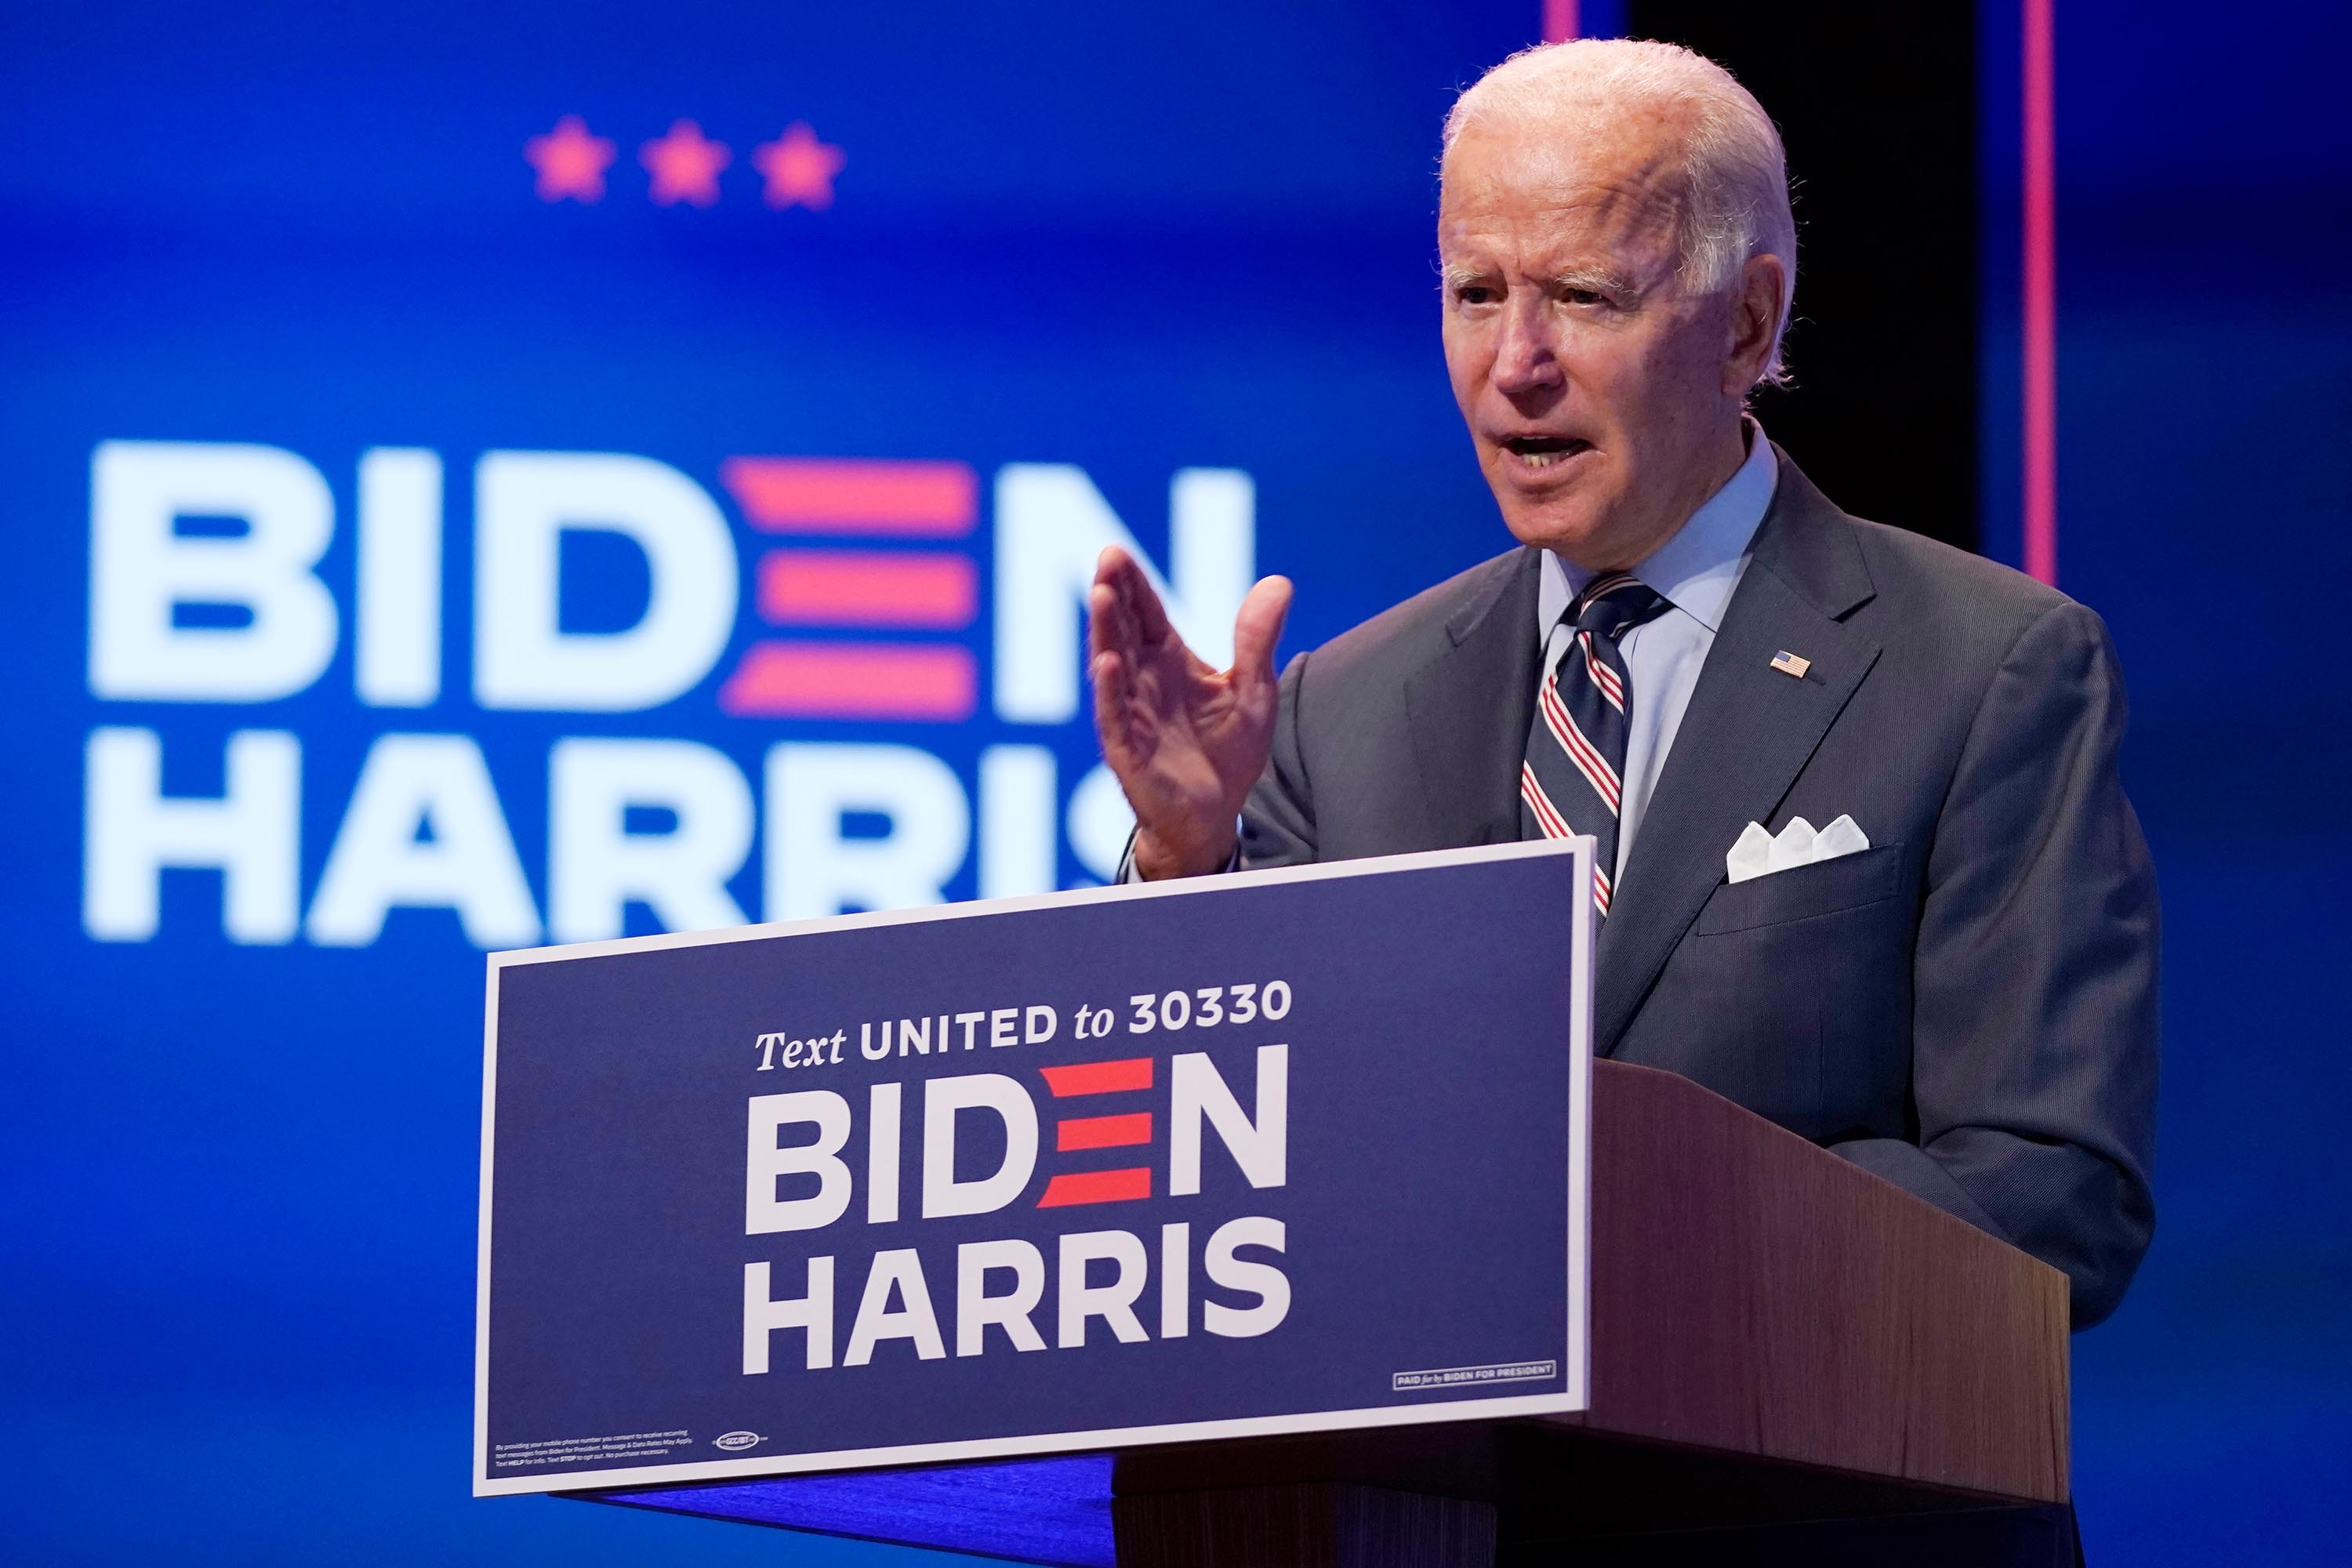 Fact check: Biden ad misleadingly suggests Trump called Covid-19 a 'hoax'